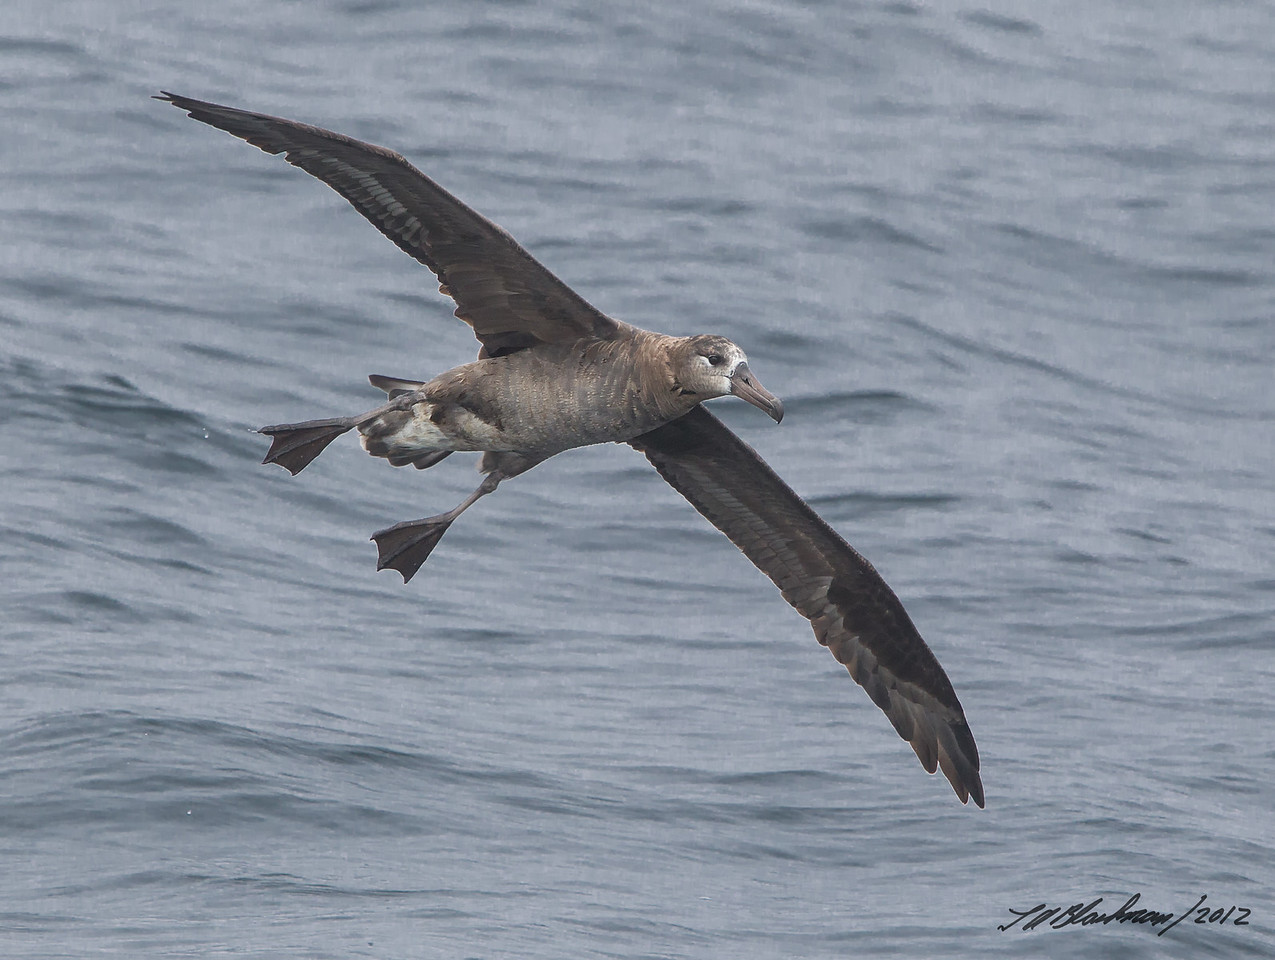 Black-footed Albatross Phoebastria nigripes